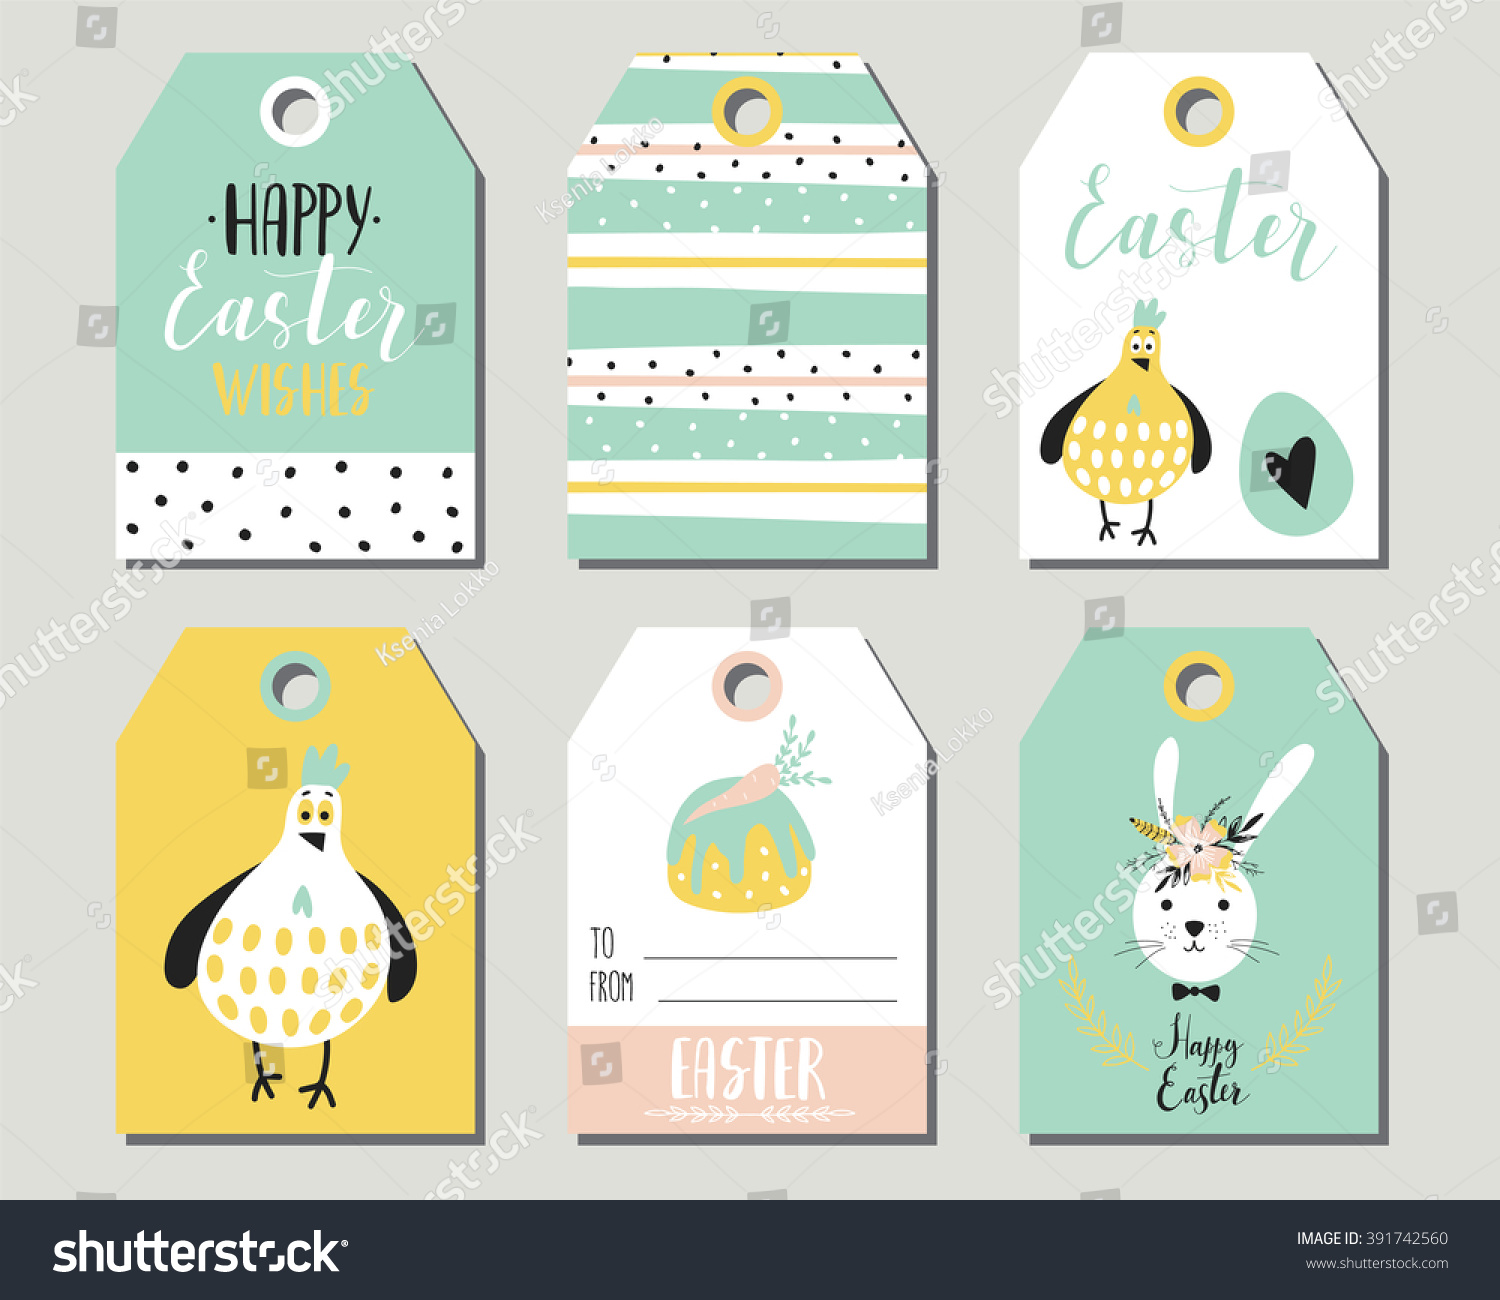 Easter gift tags cute easter bunny stock vector hd royalty free easter gift tags with cute easter bunny eggs flowers and easter greetings set negle Image collections